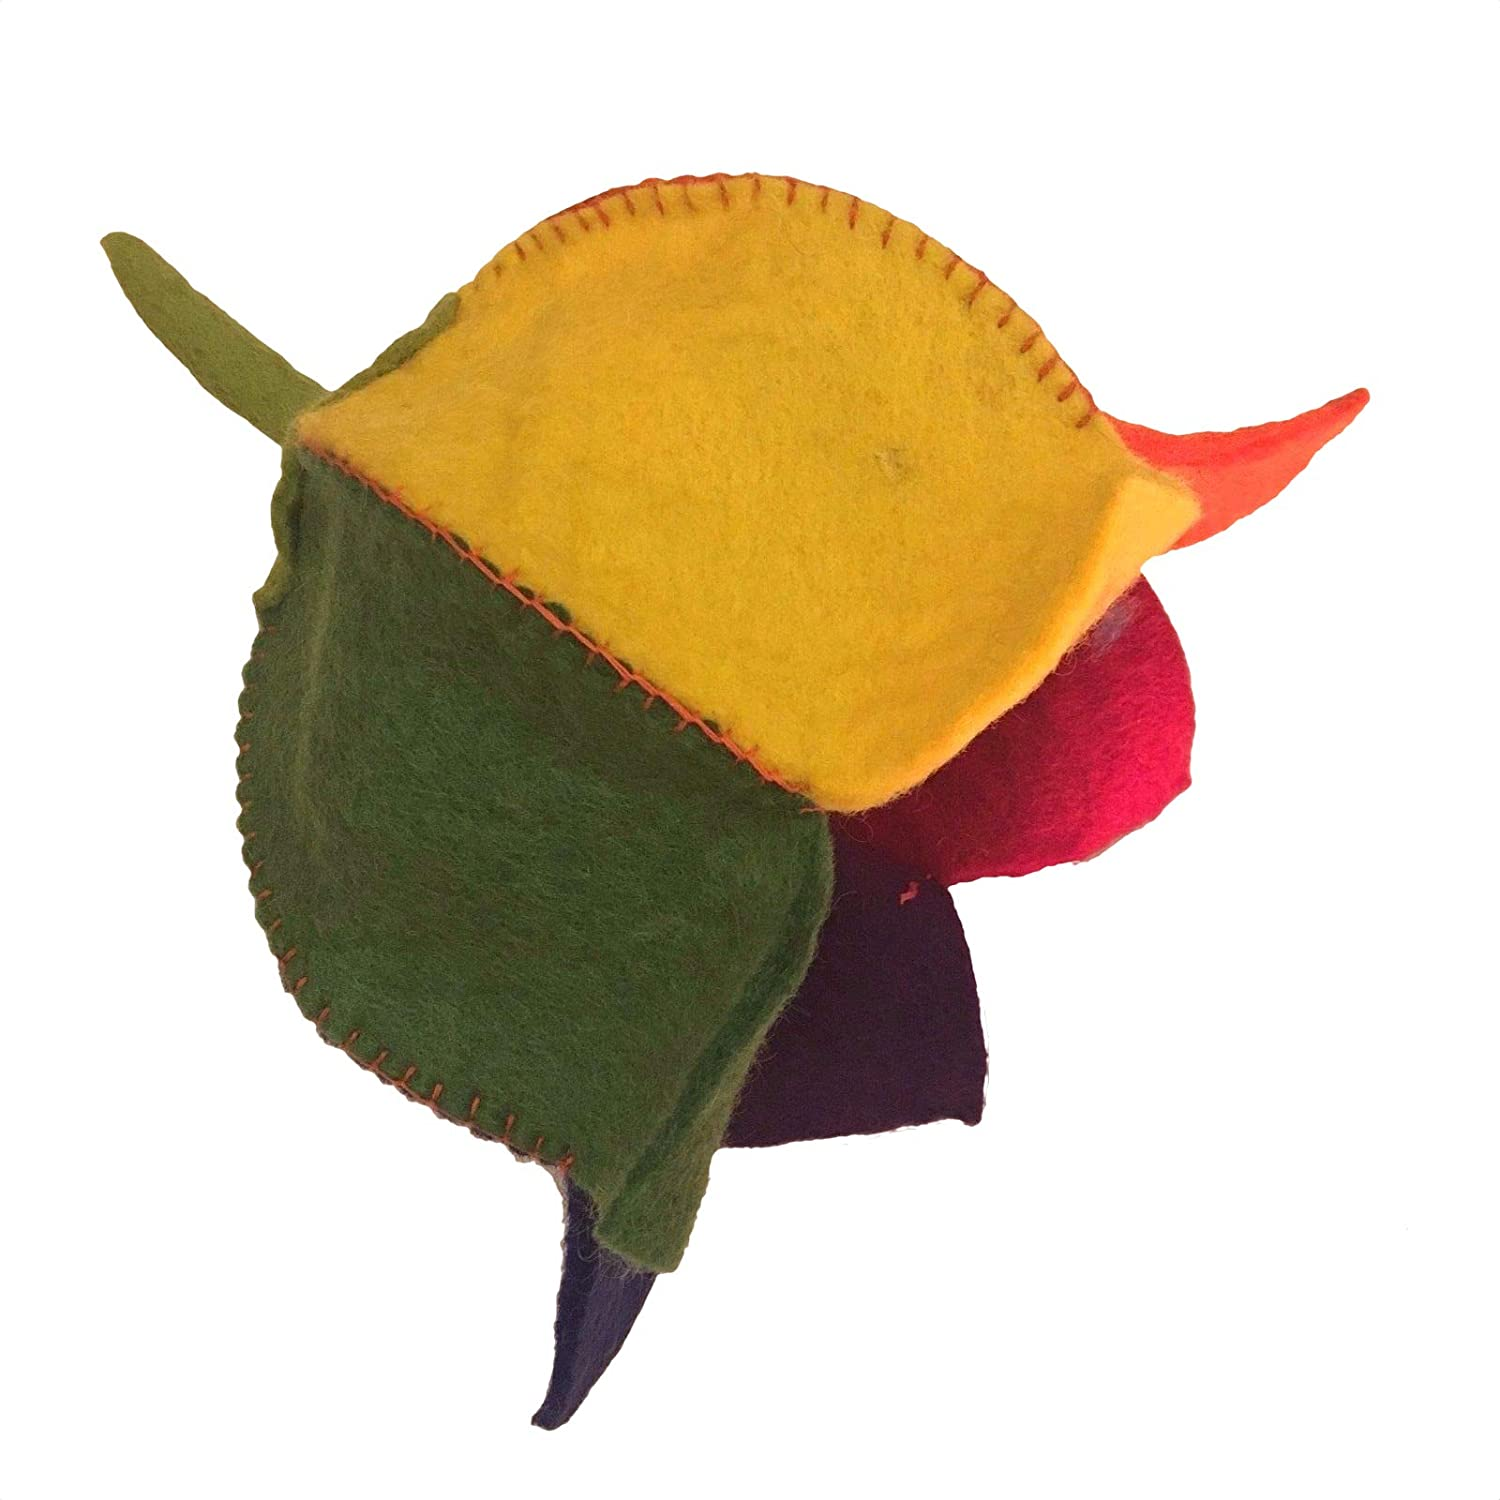 44592b02dc1 FELT HATS FRUIT STRAWBERRY PINEAPPLE ORANGE BANANA FLOWER HIPPY BOHO  FESTIVAL DL (Banana Yellow)  Amazon.co.uk  Clothing